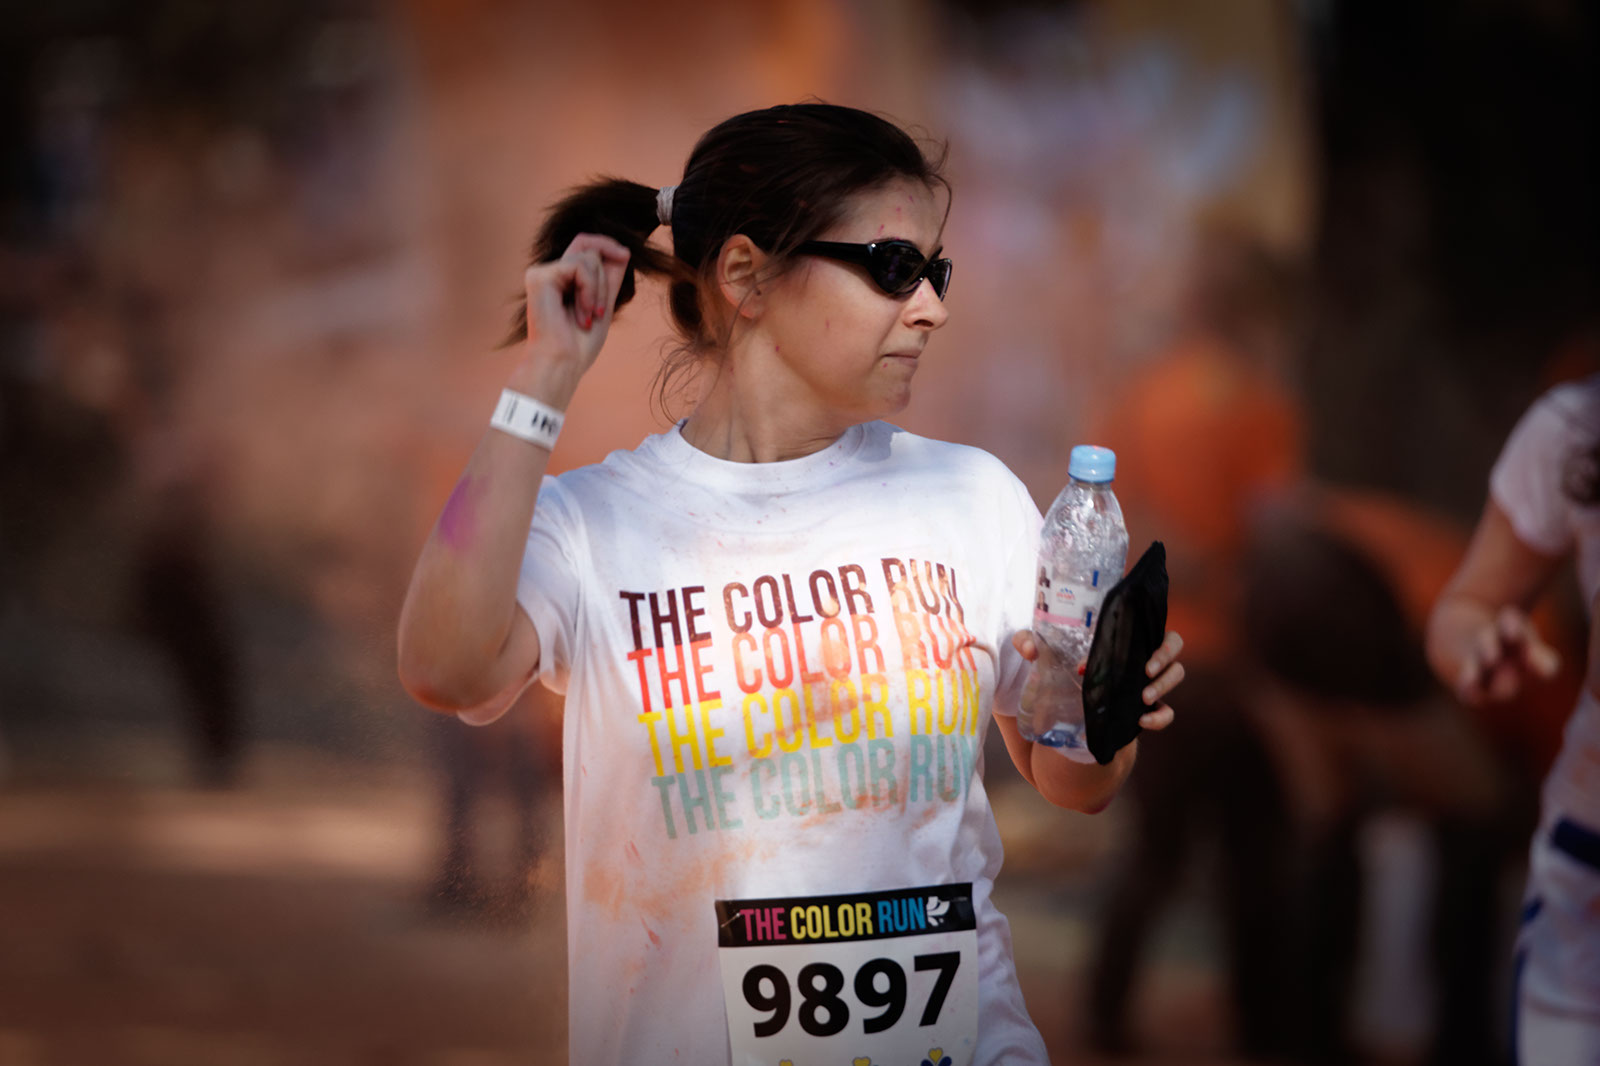 The Color Run (Brussel), september 2013